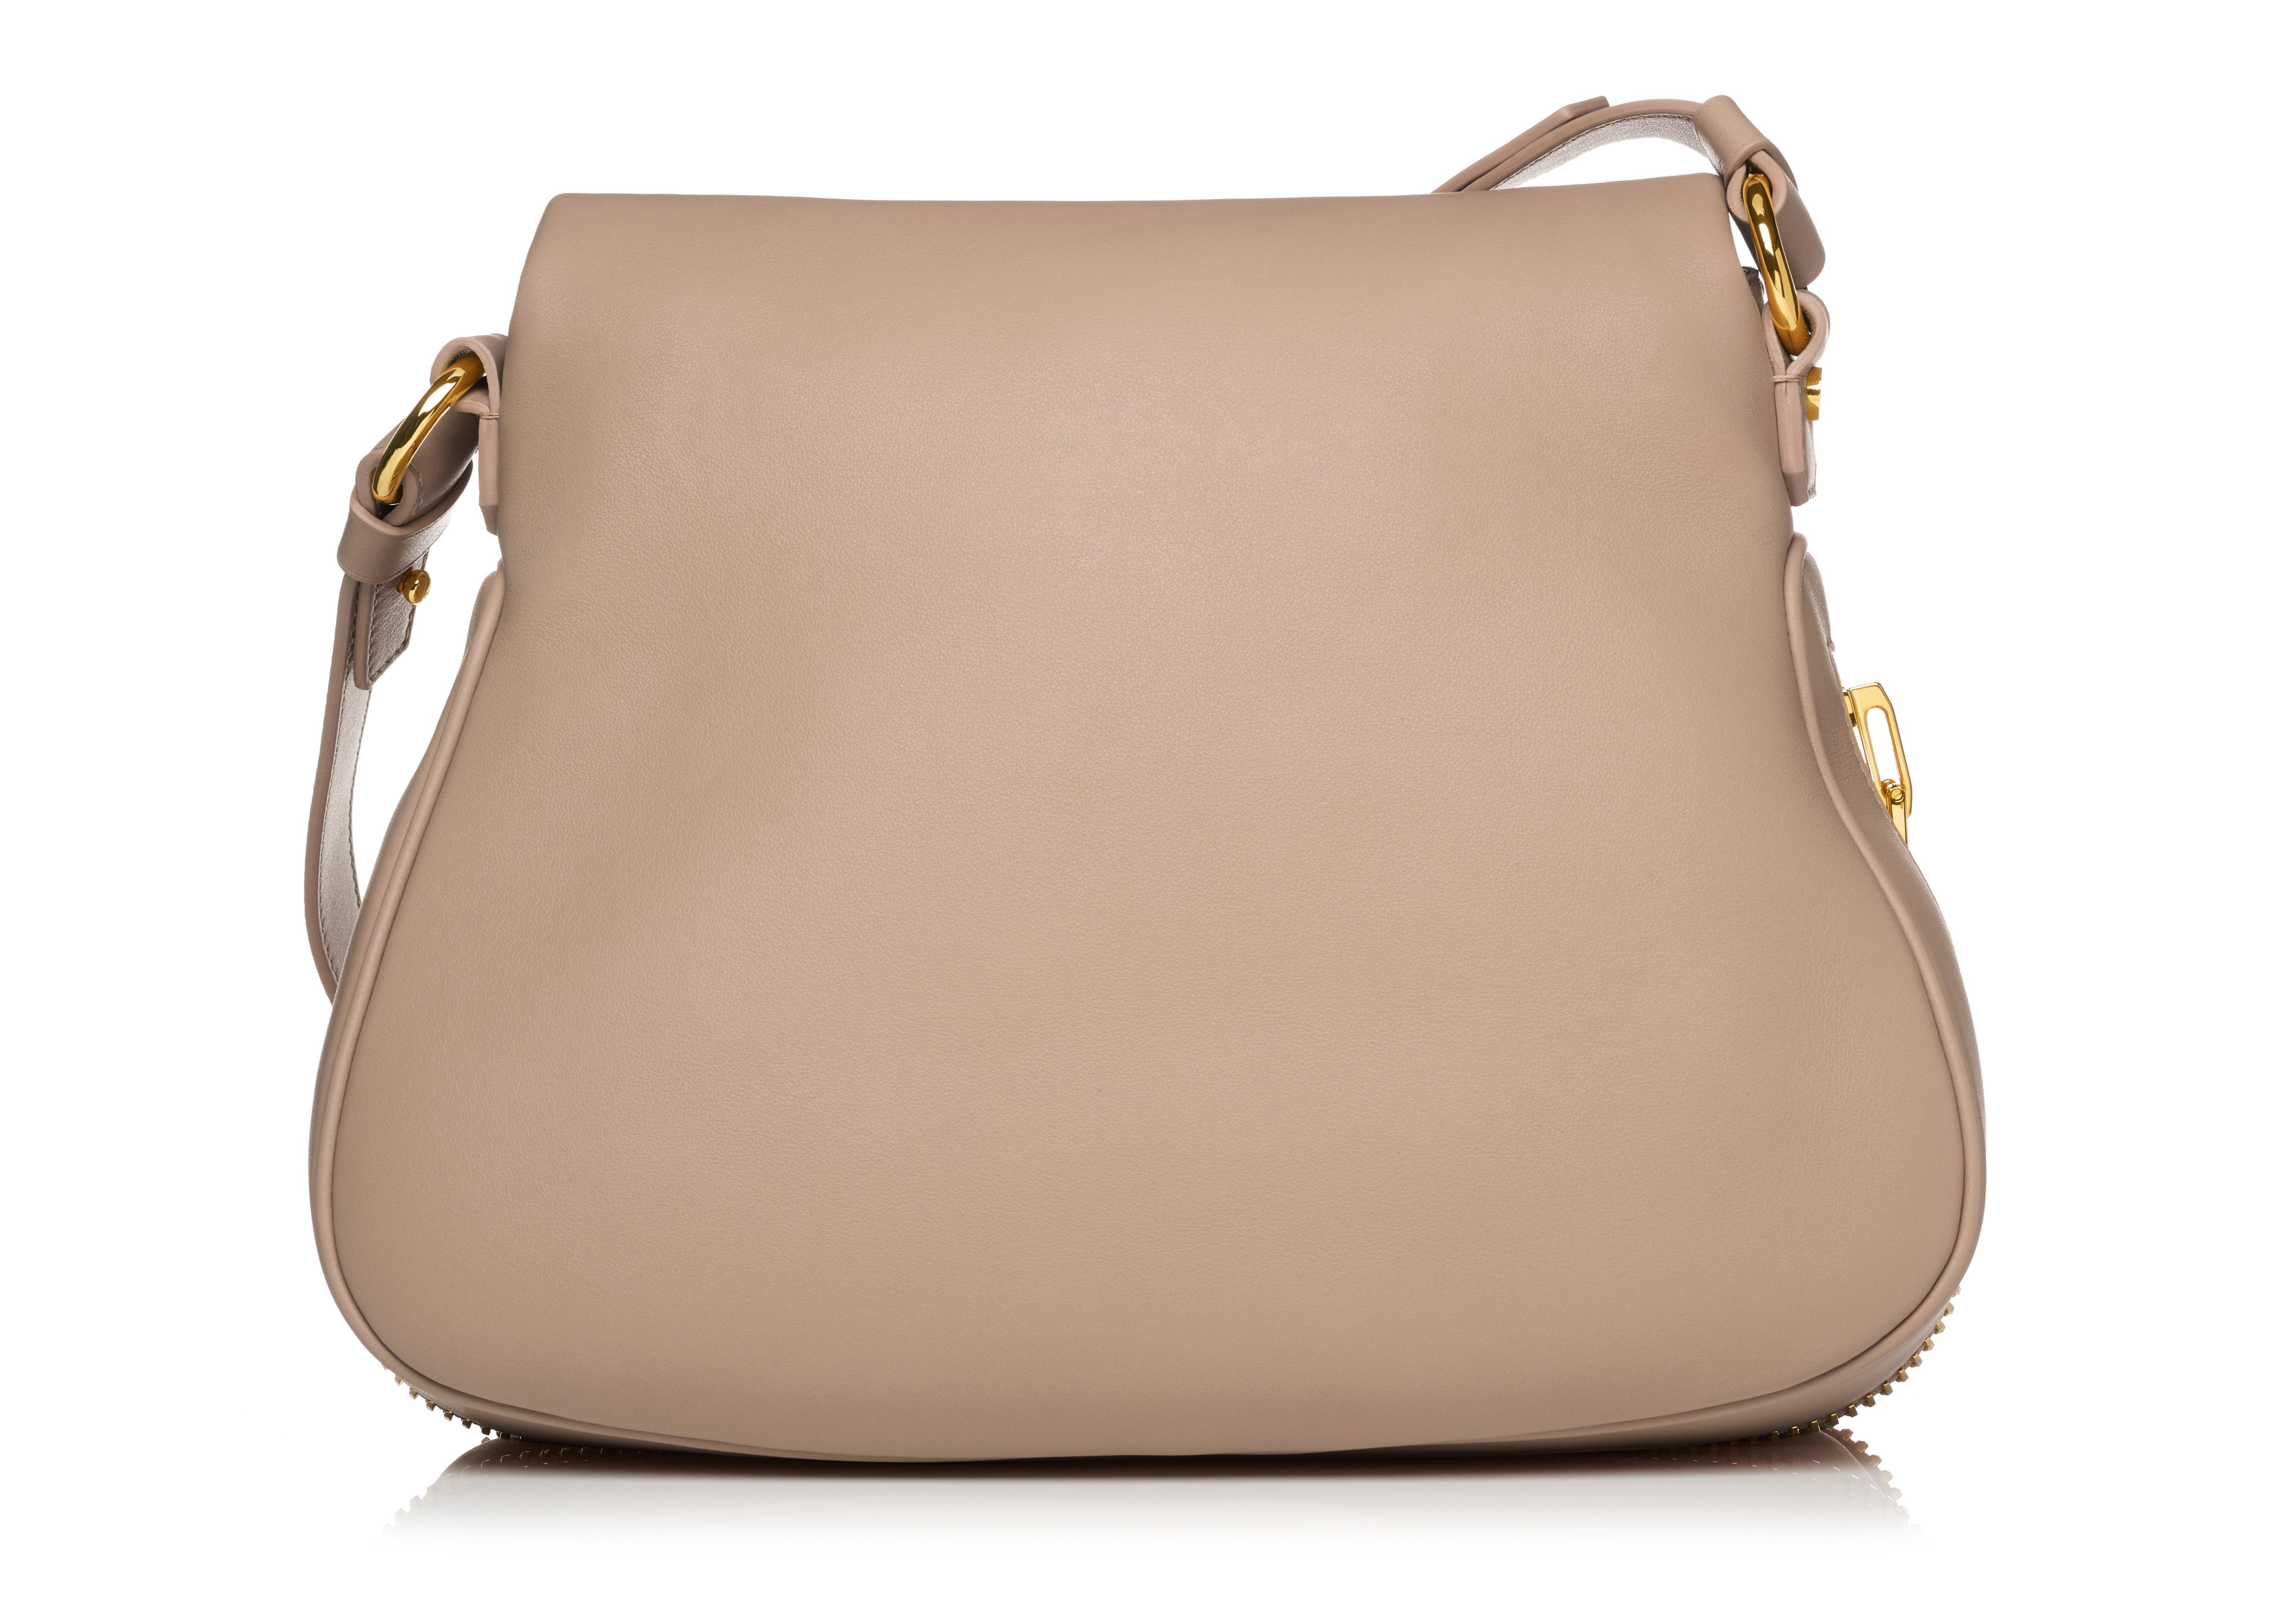 ORIGINAL JENNIFER BAG C thumbnail